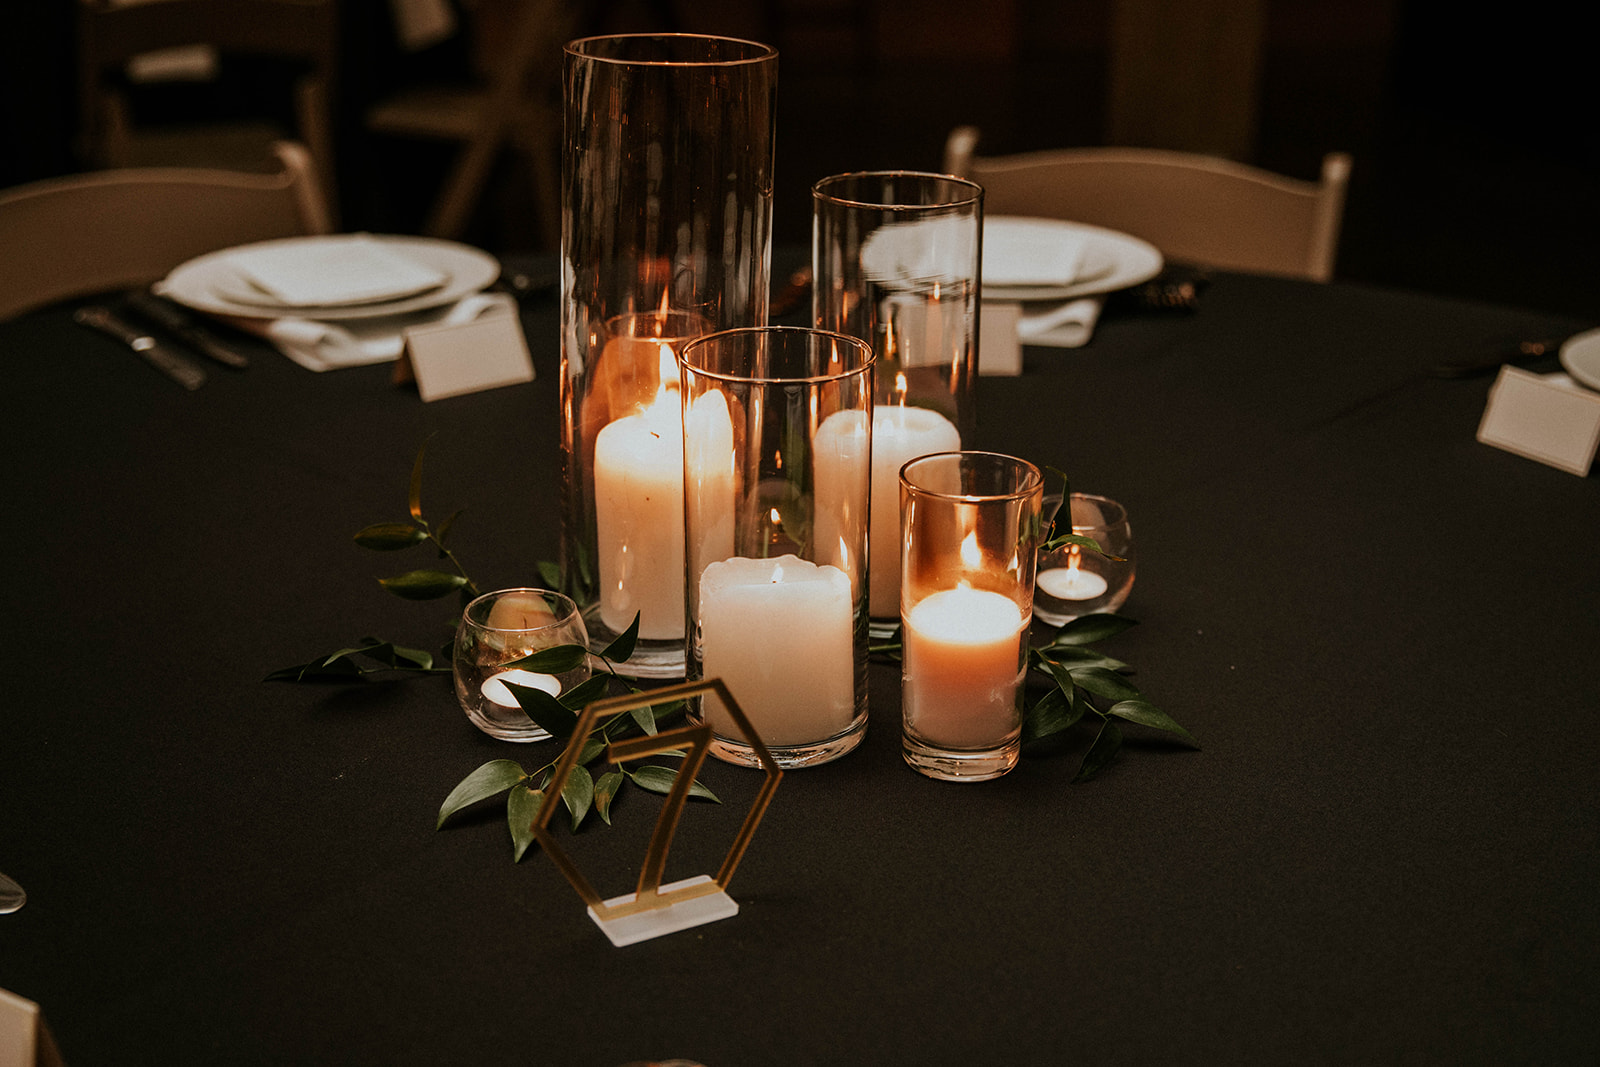 Candle wedding centerpieces: Timeless Loveless Barn Winter Wedding by Kendall Parsons featured on Nashville Bride Guide